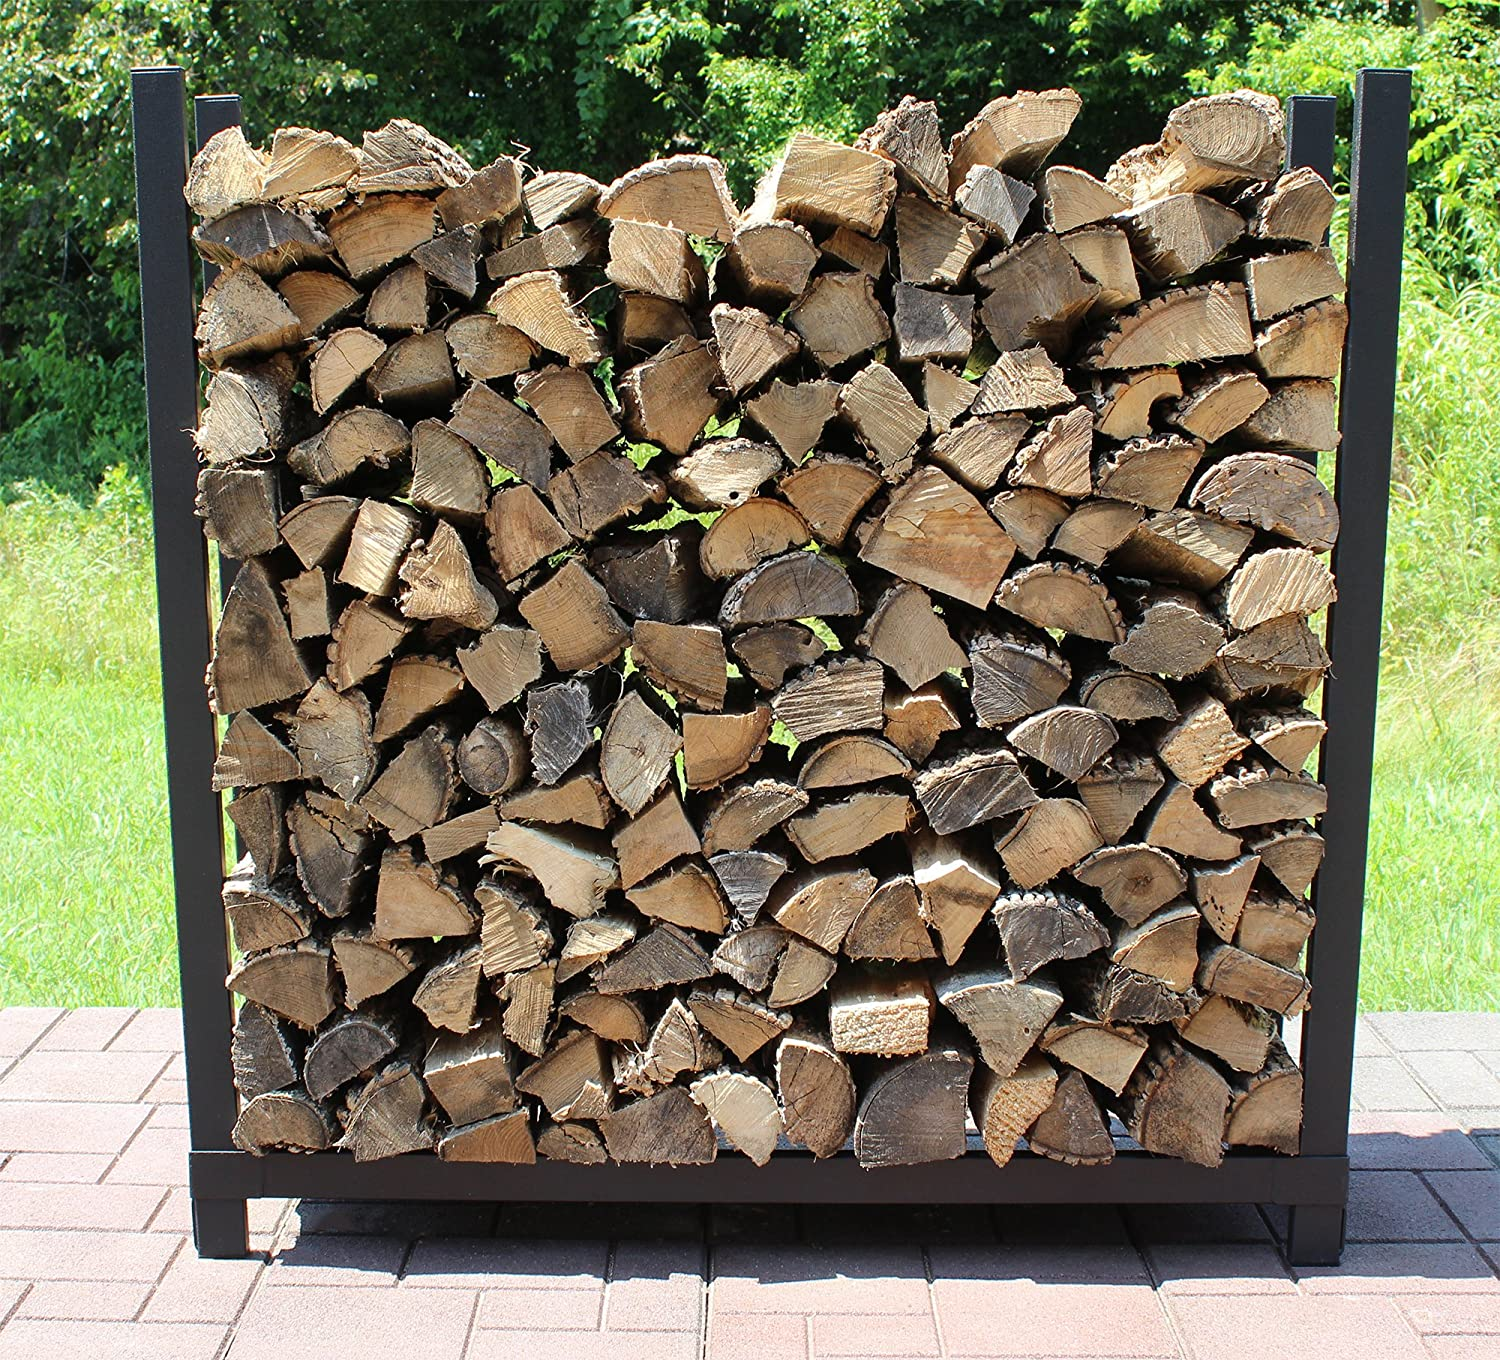 Woodhaven 4' EZ SLIDE FIREWOOD RACK WITH FULL COVER ALEXANDER MFG. CO. INC.